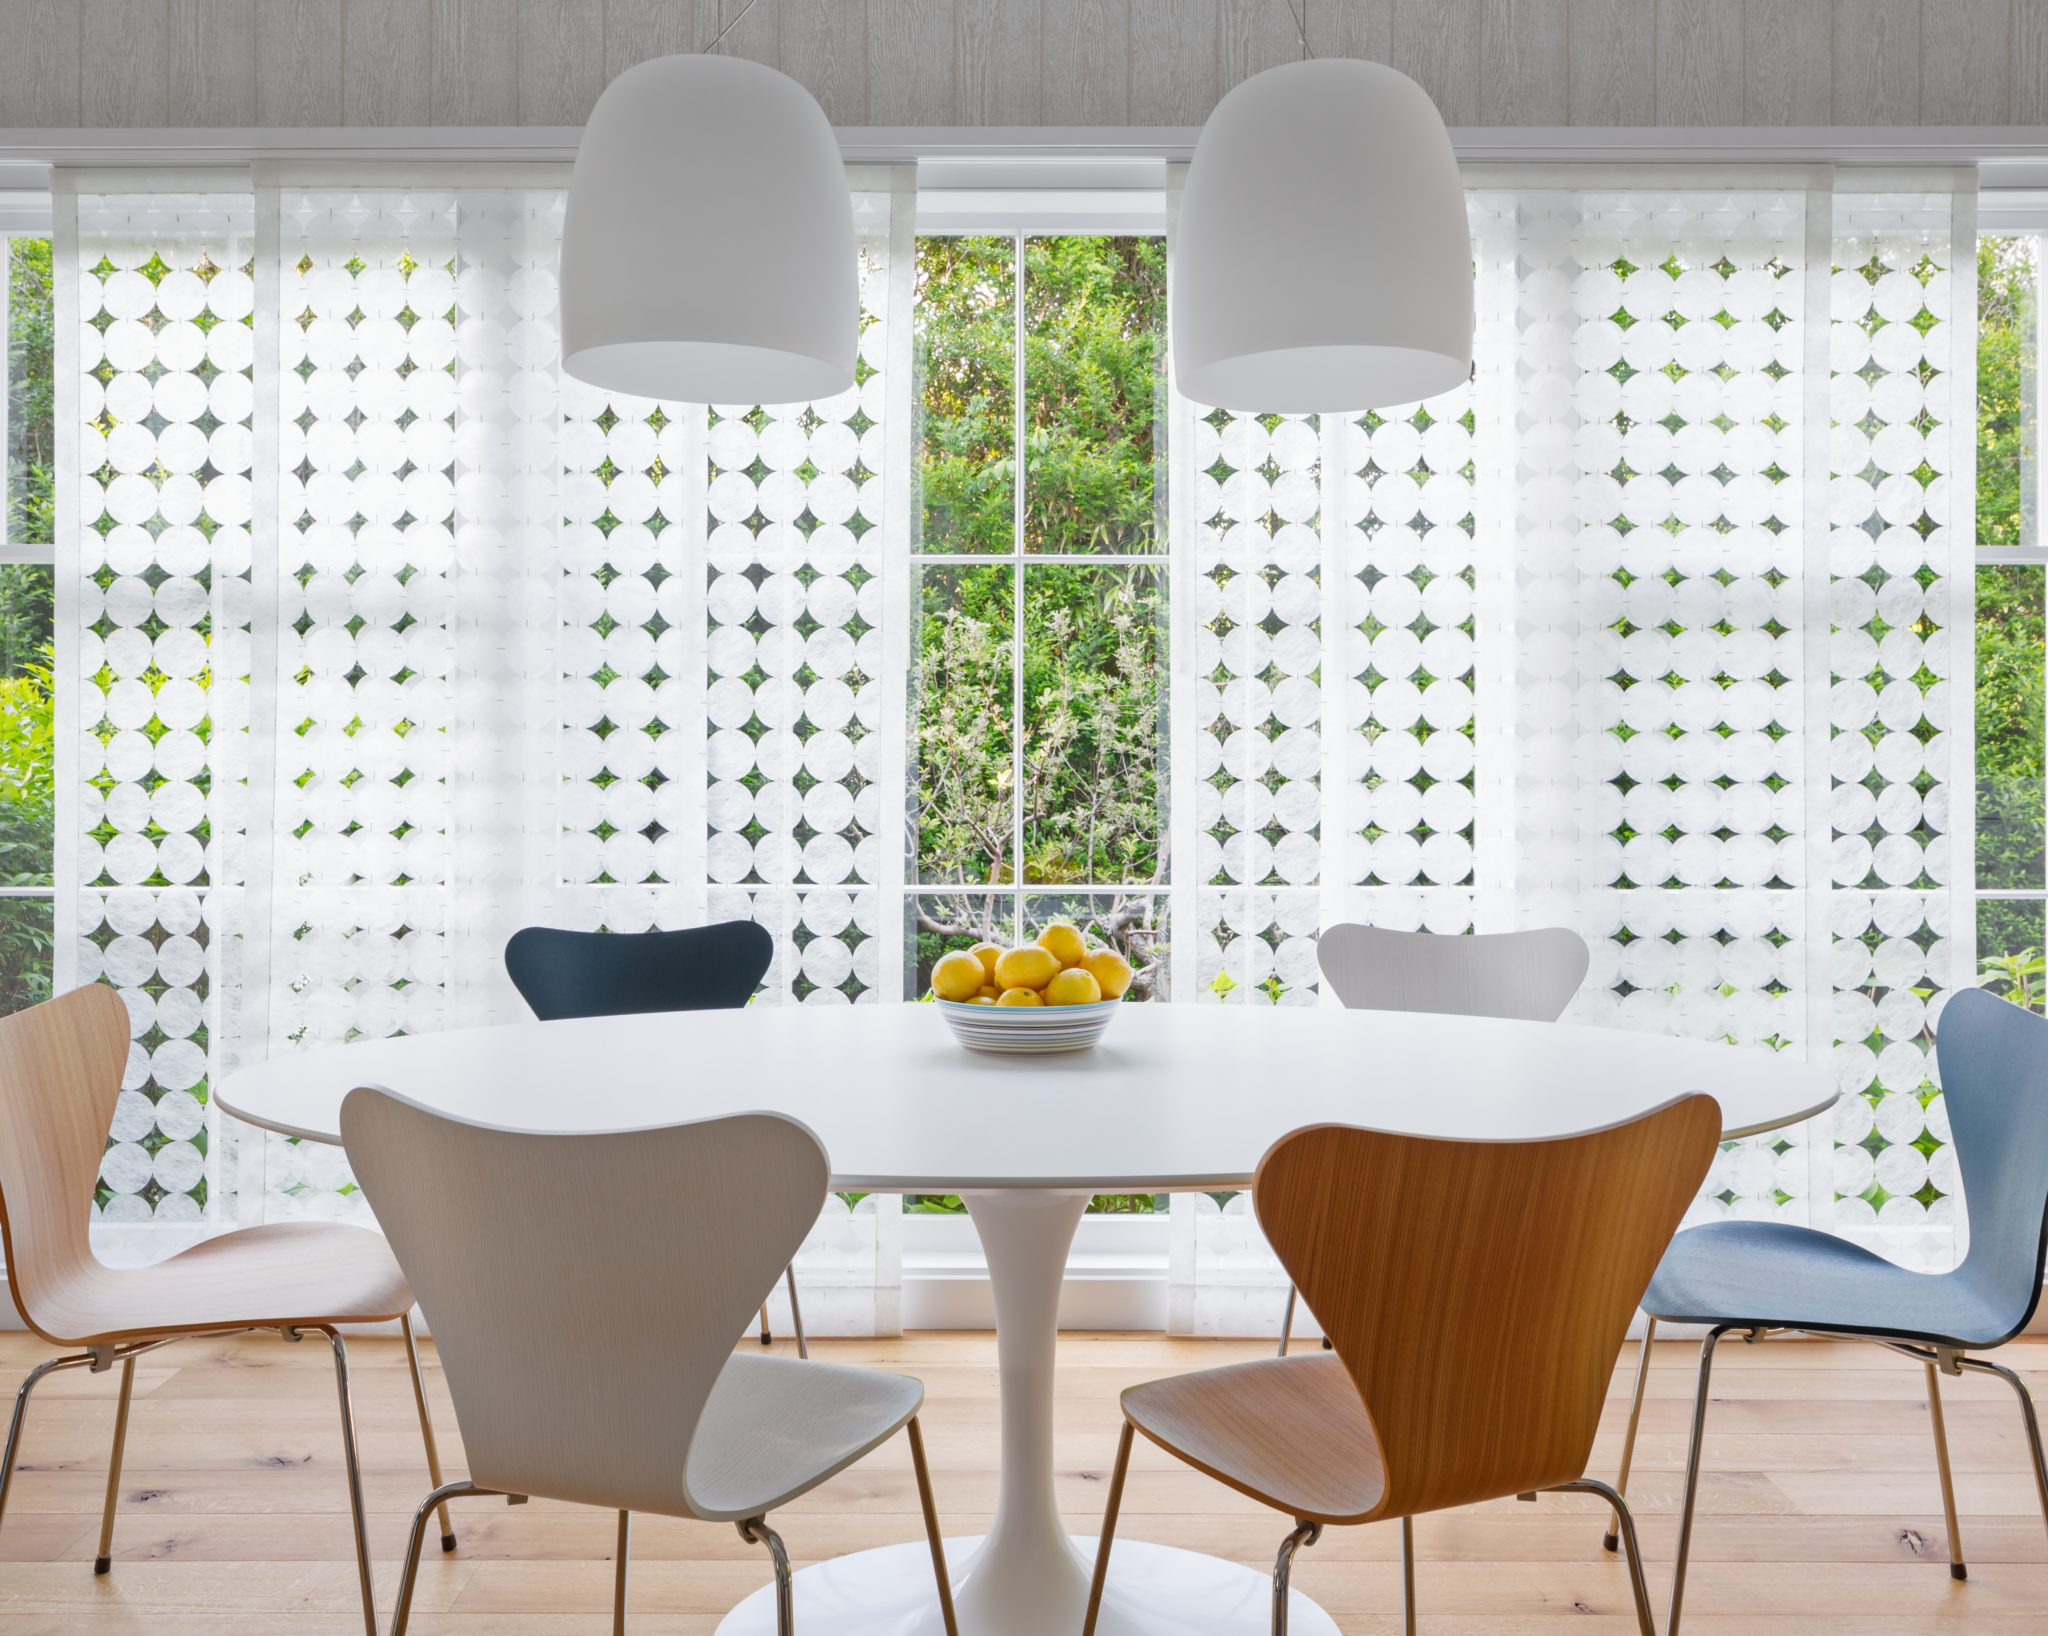 Dining room with large window and sliding window shades by Kellie Franklin